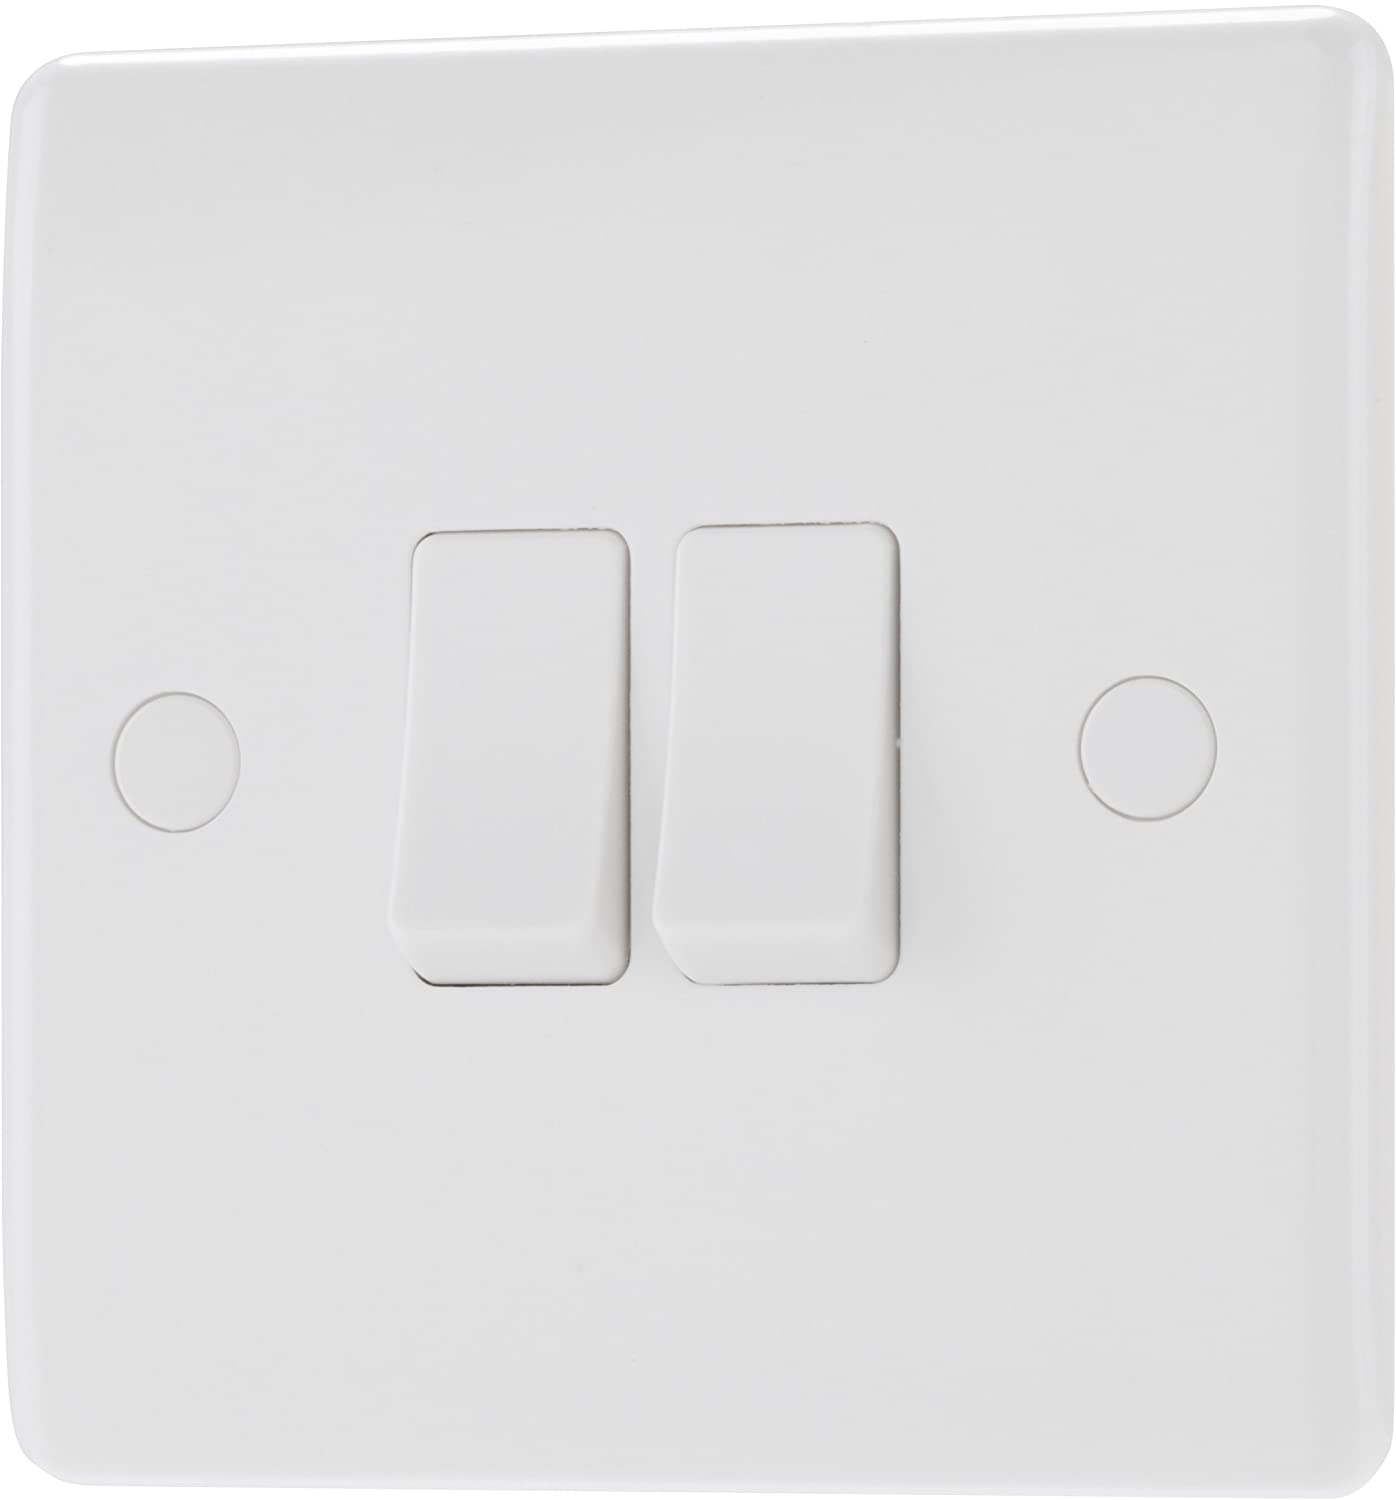 White Double 2 Way Electric Light Switch Box 2 Gang Electrical Wall 10 amp